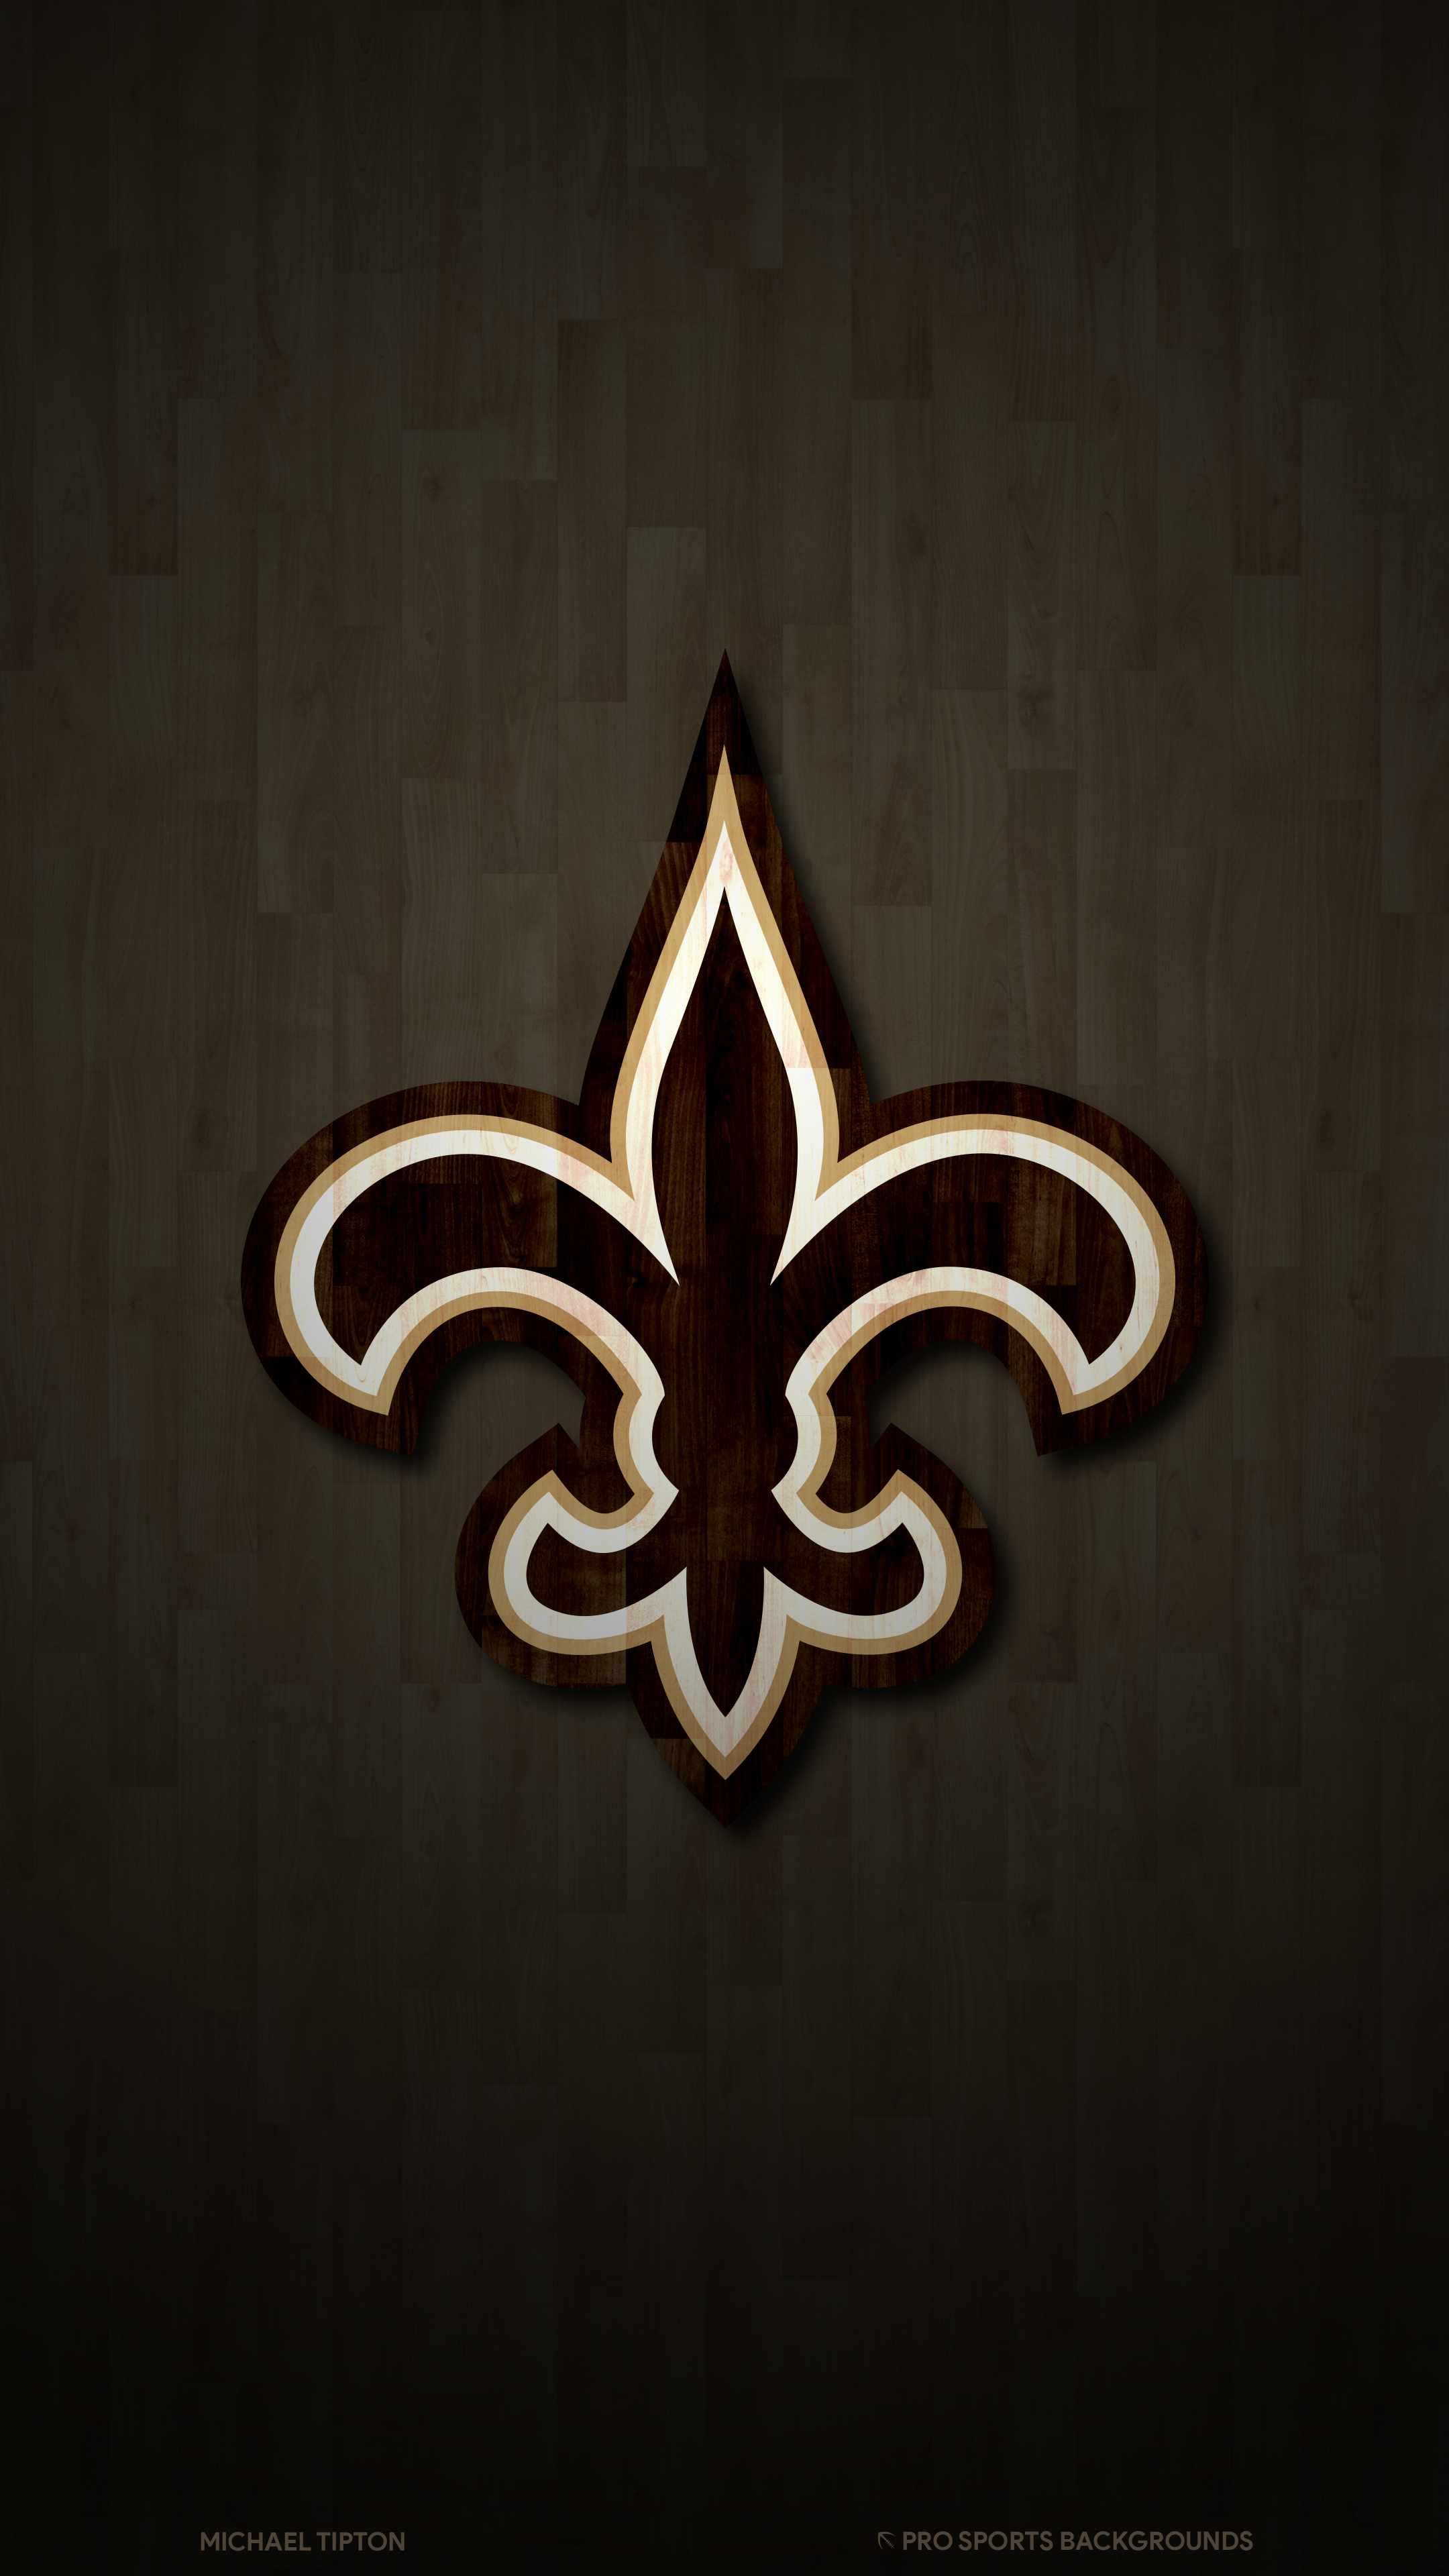 2020 New Orleans Saints Wallpapers | Pro Sports Backgrounds